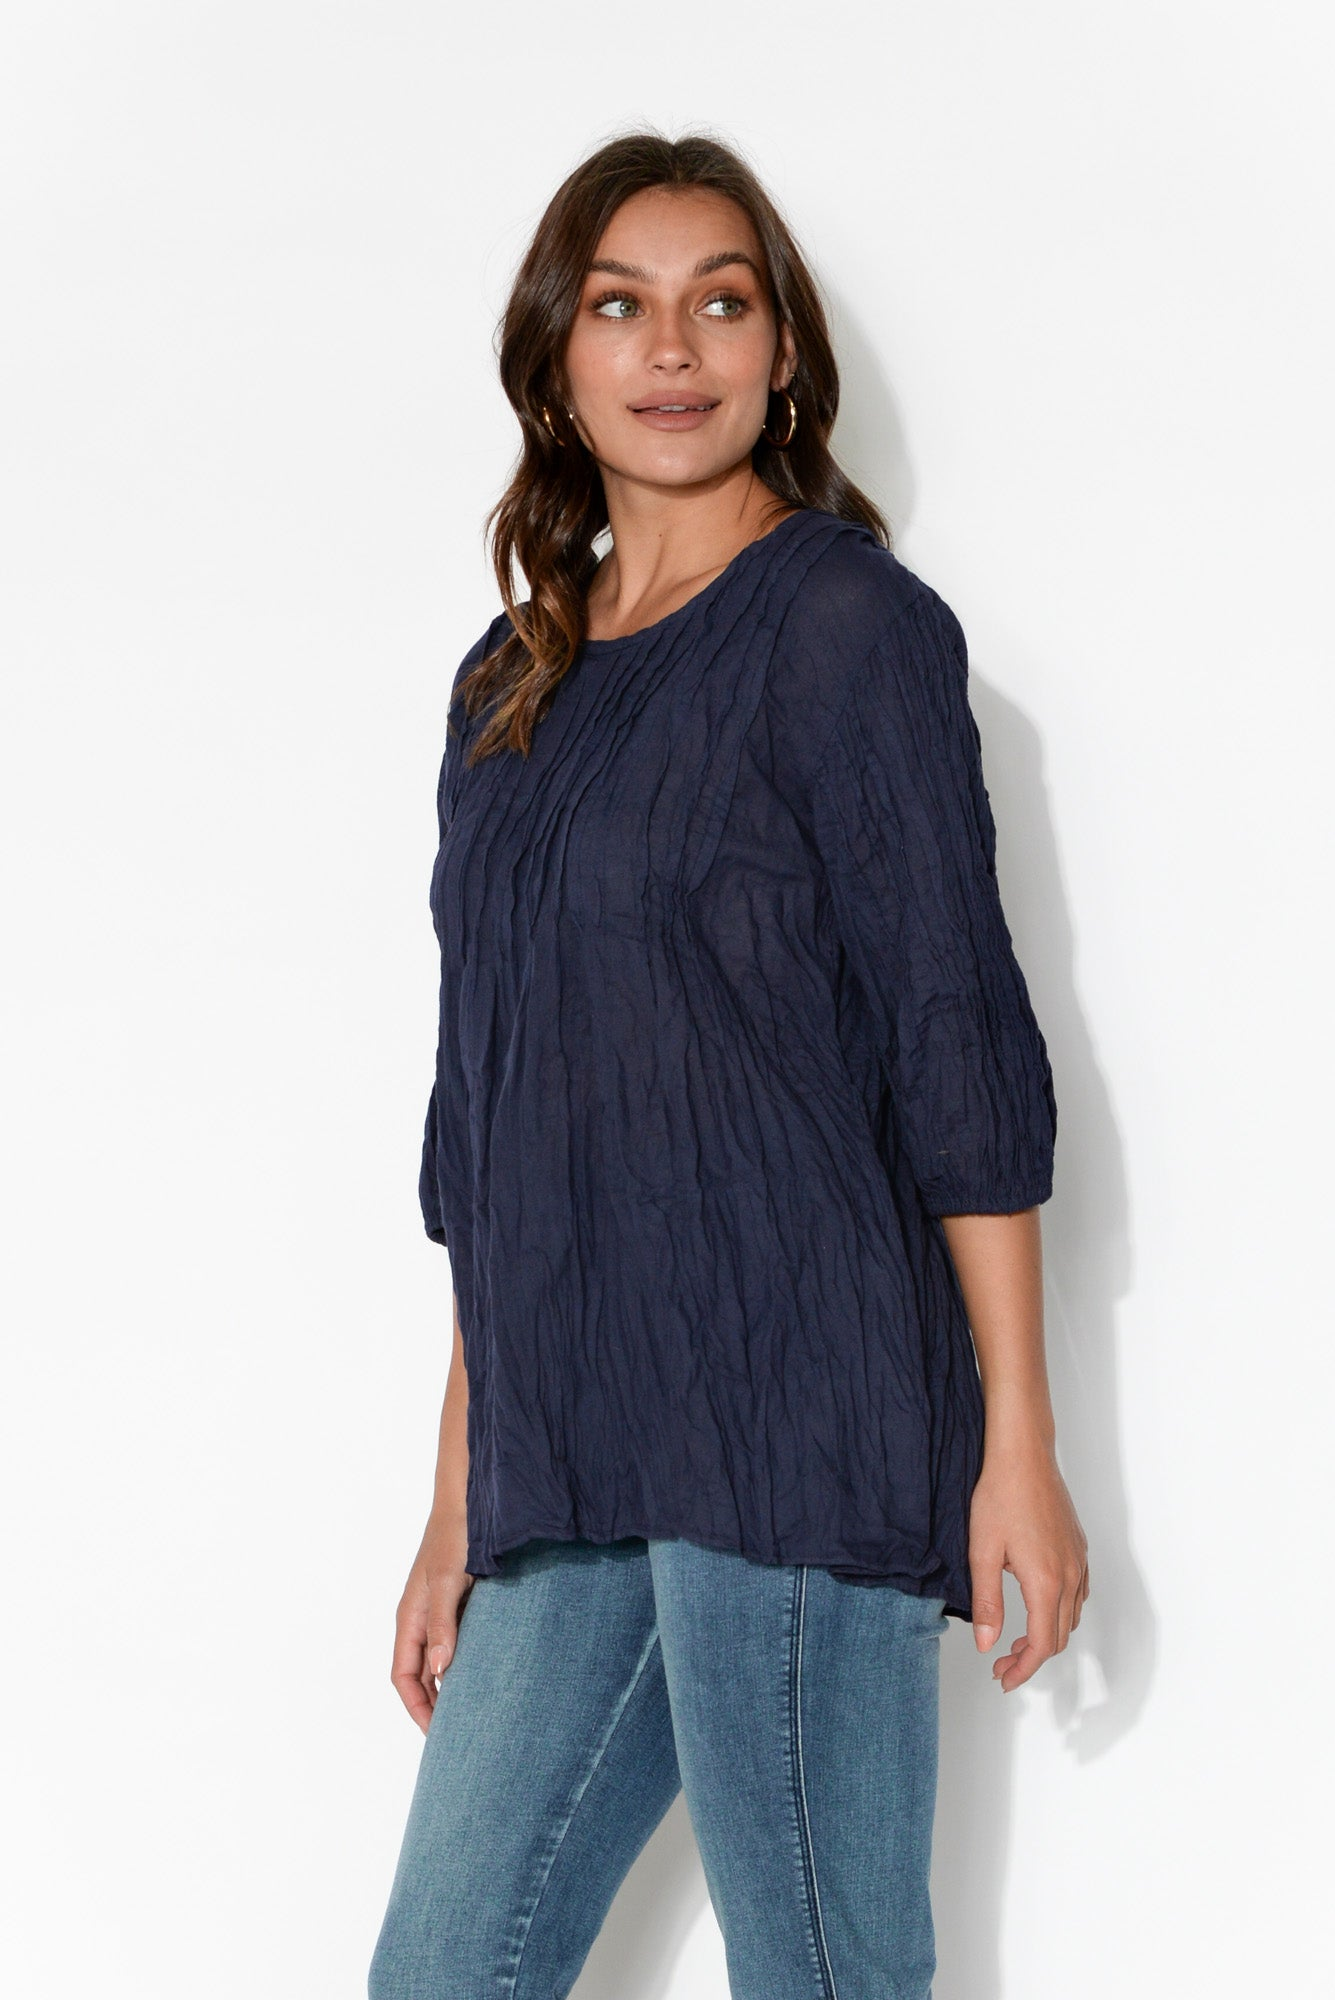 Navy Crinkle Cotton Tunic Top